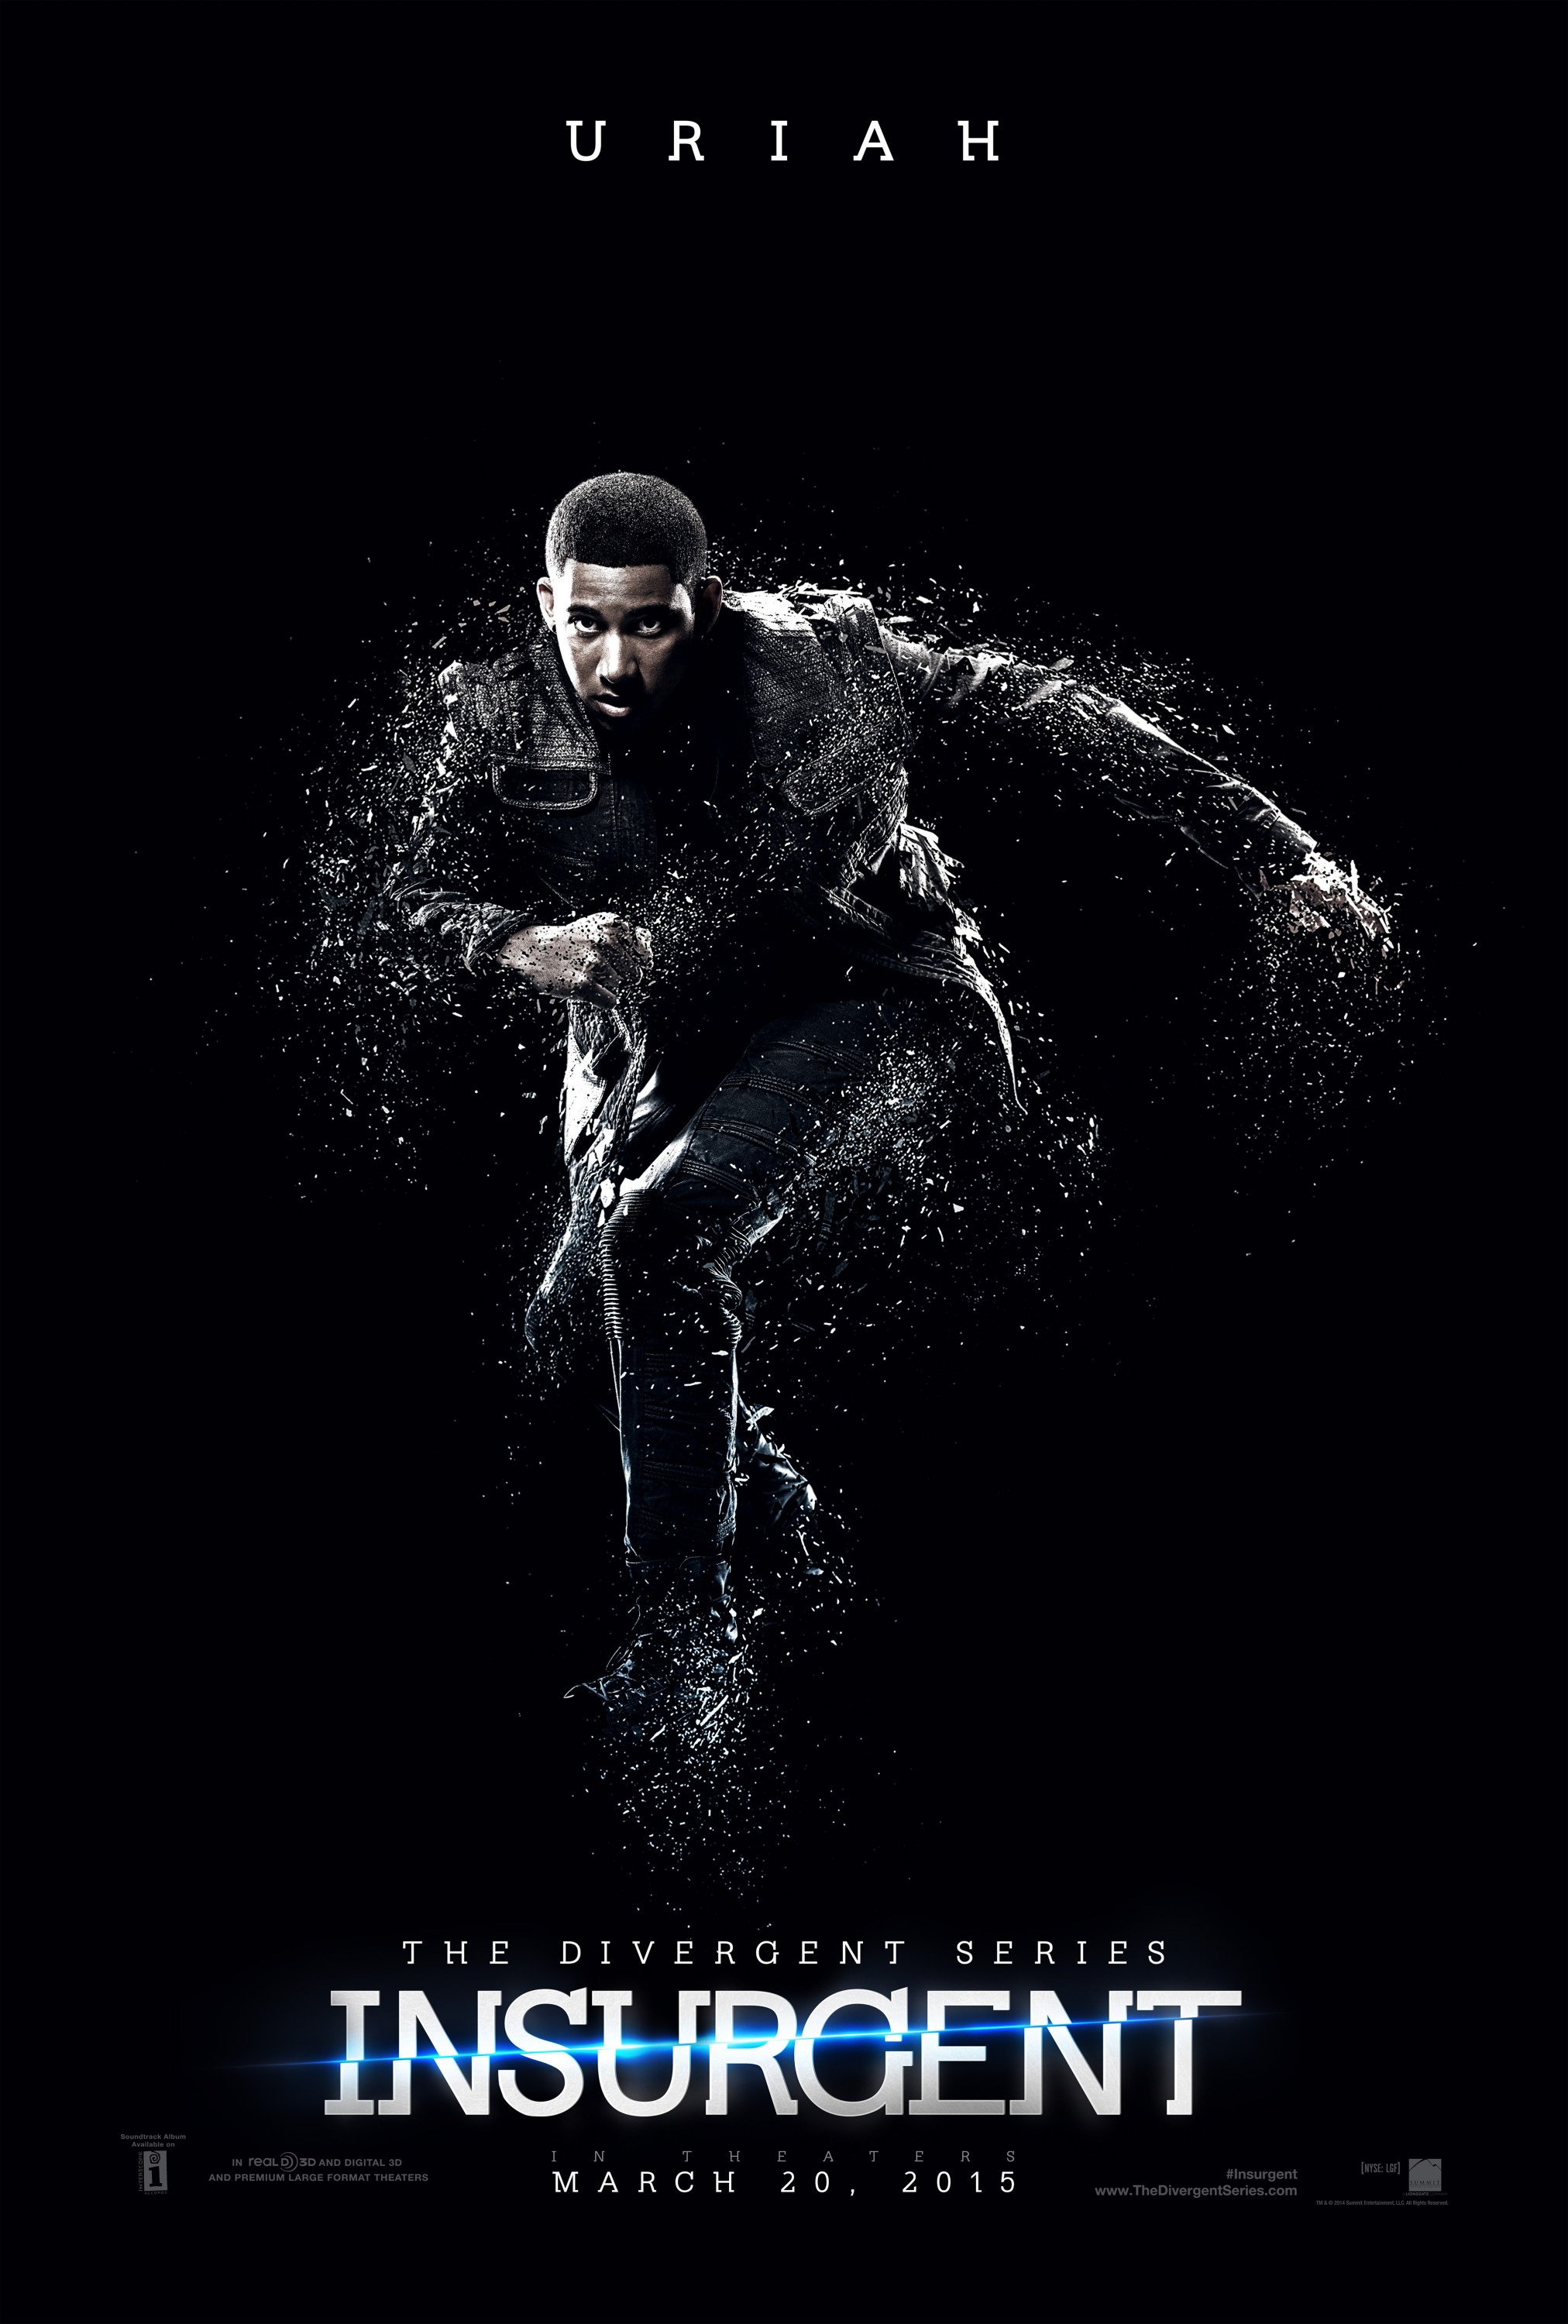 Insurgent-Official Poster XXLG-30OUTUBRO2014-07